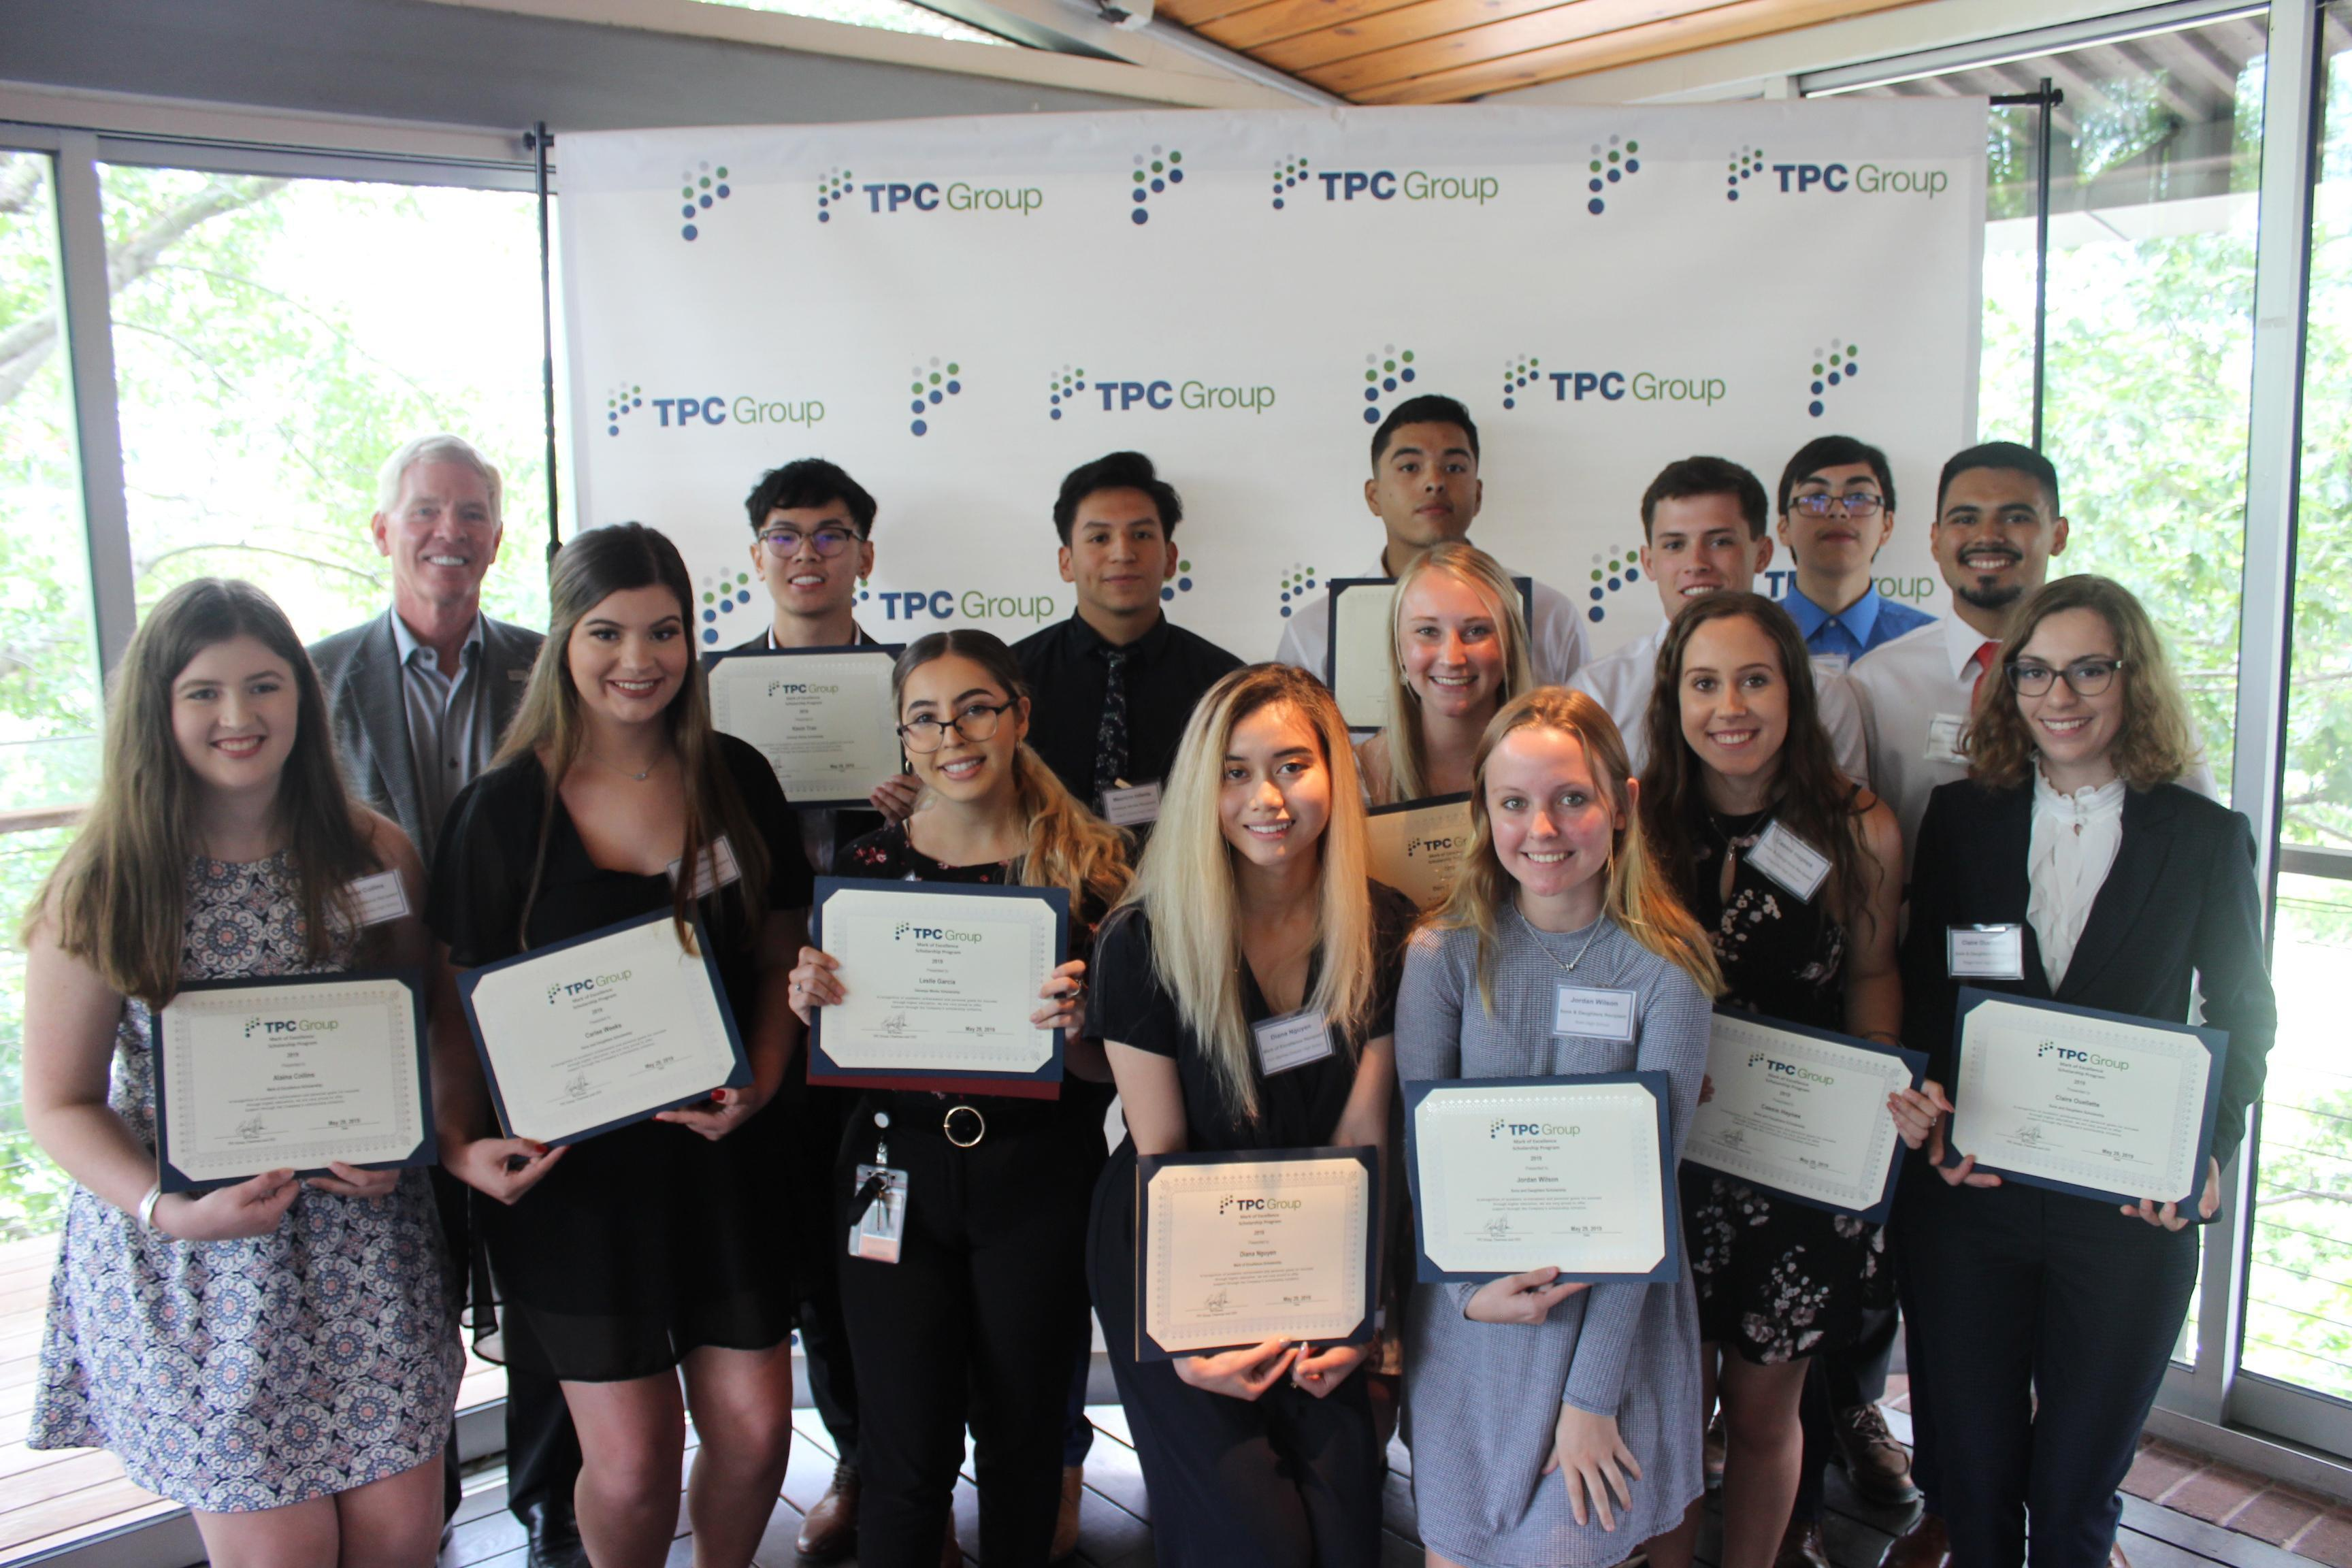 TPC Group President & CEO Ed Dineen Pictured with 2019 Scholarship Recipients